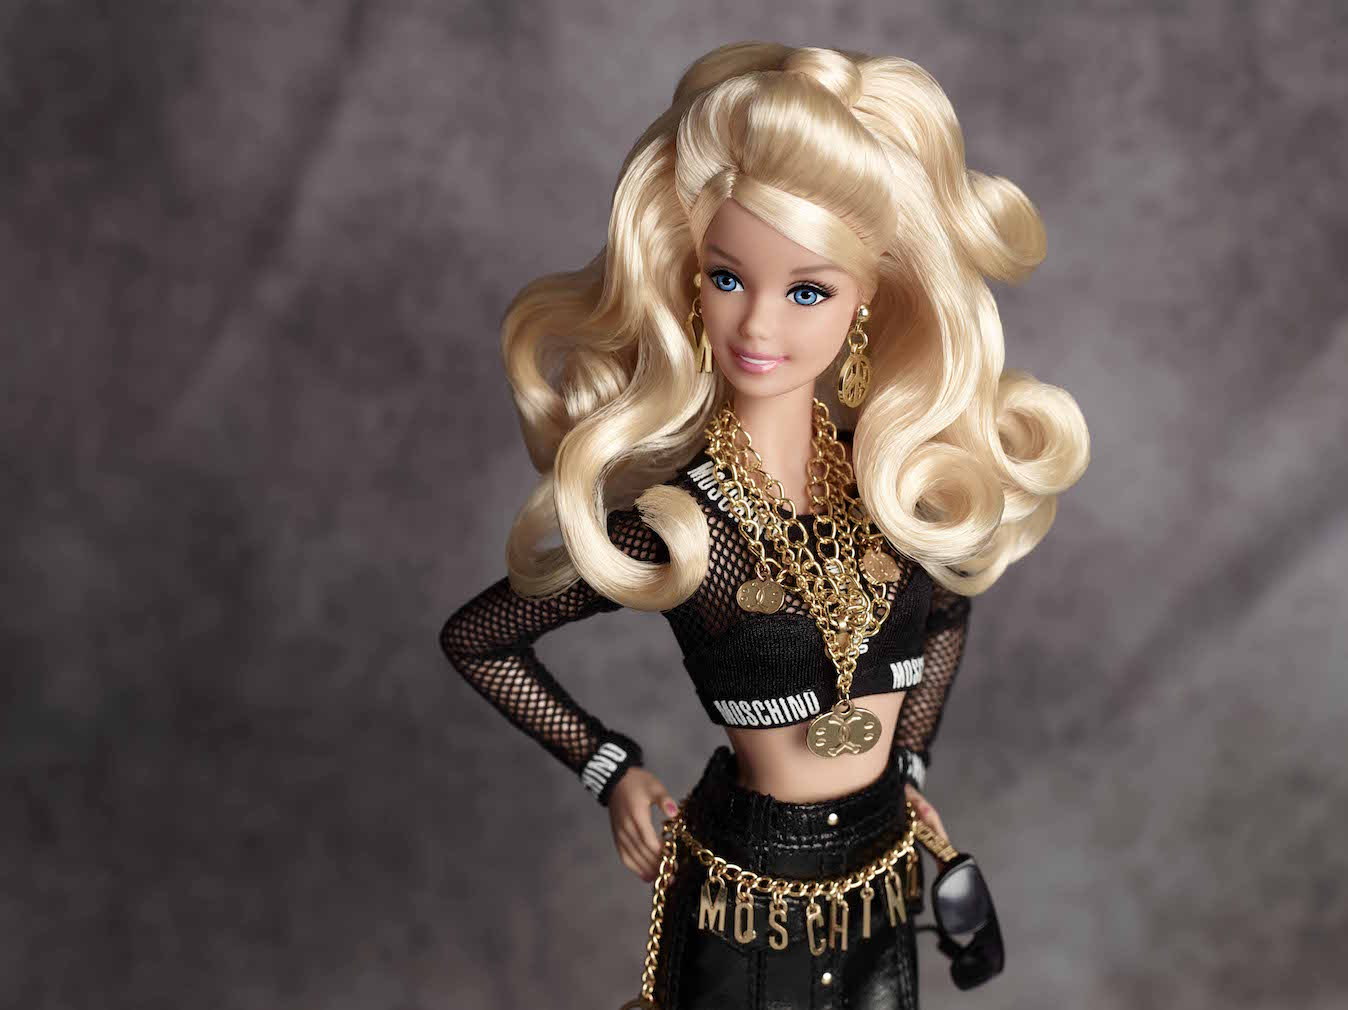 Barbie vestita da Moschino disponibile solo online